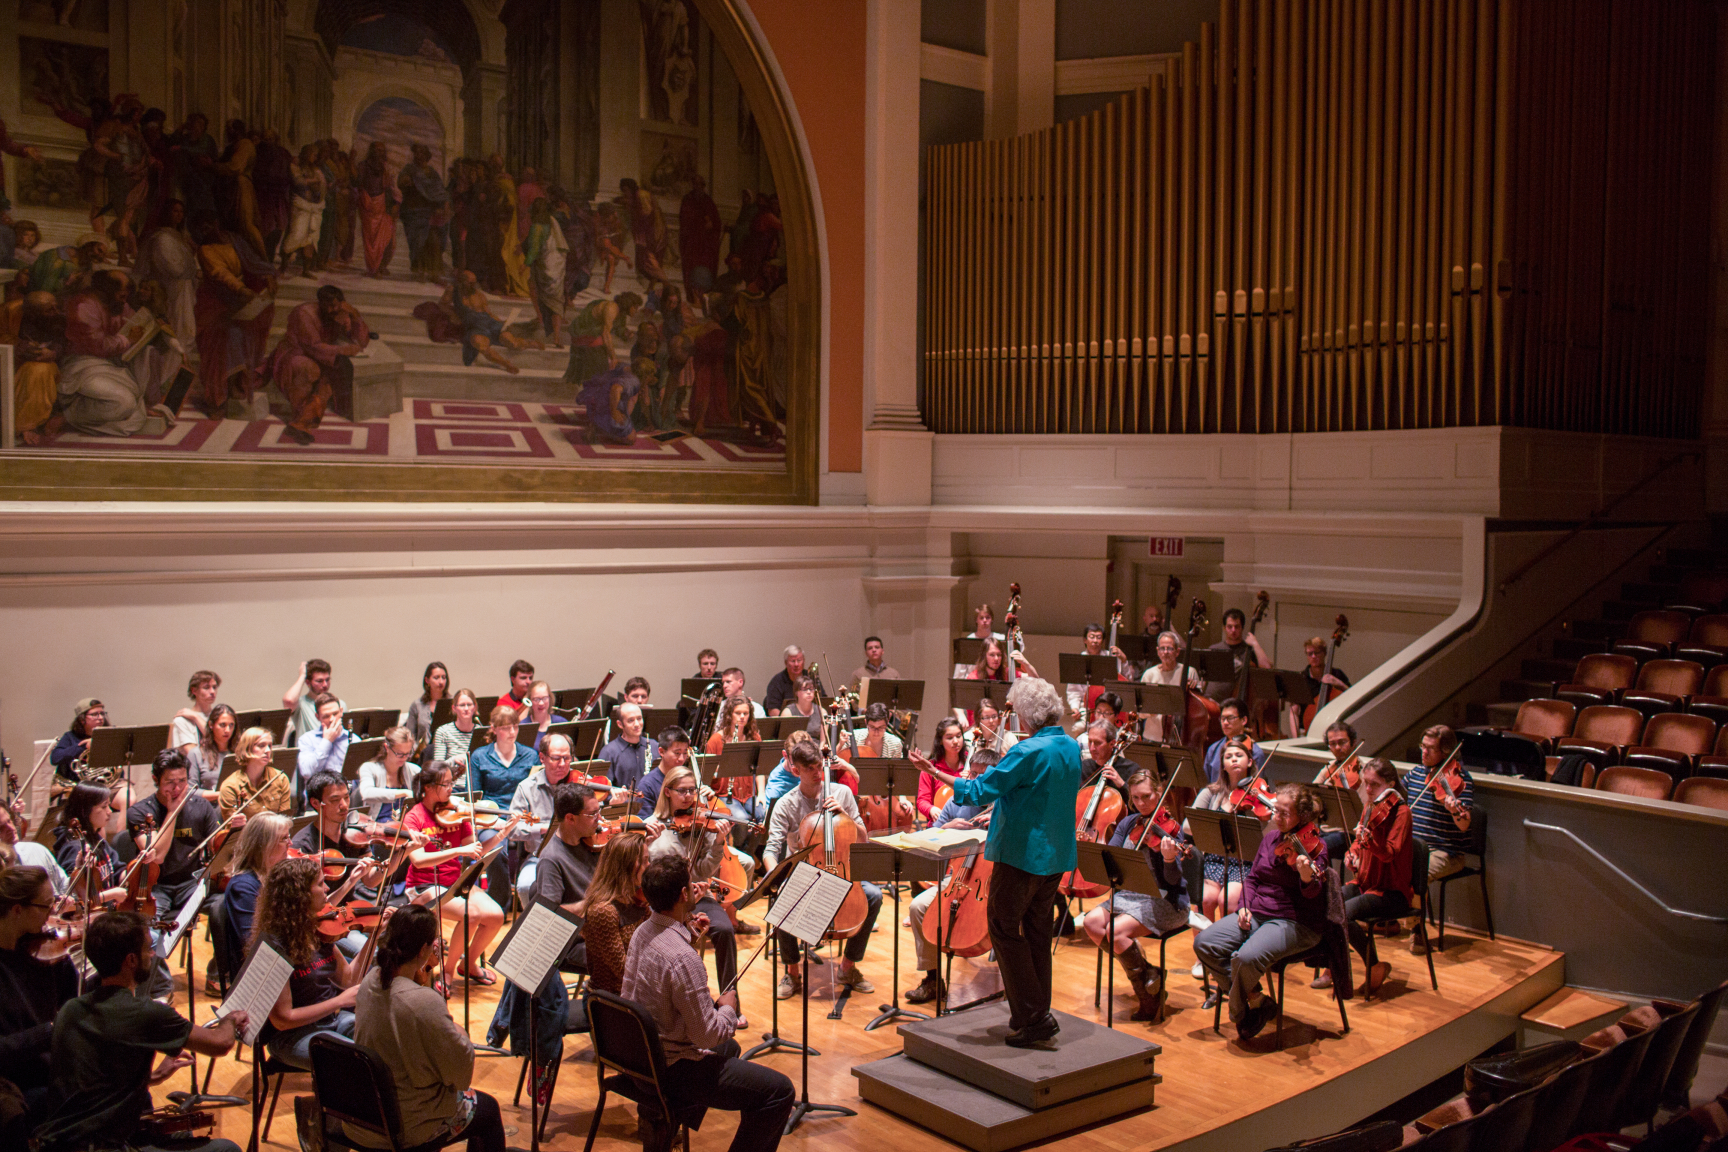 Orchestra in Cabell Hall